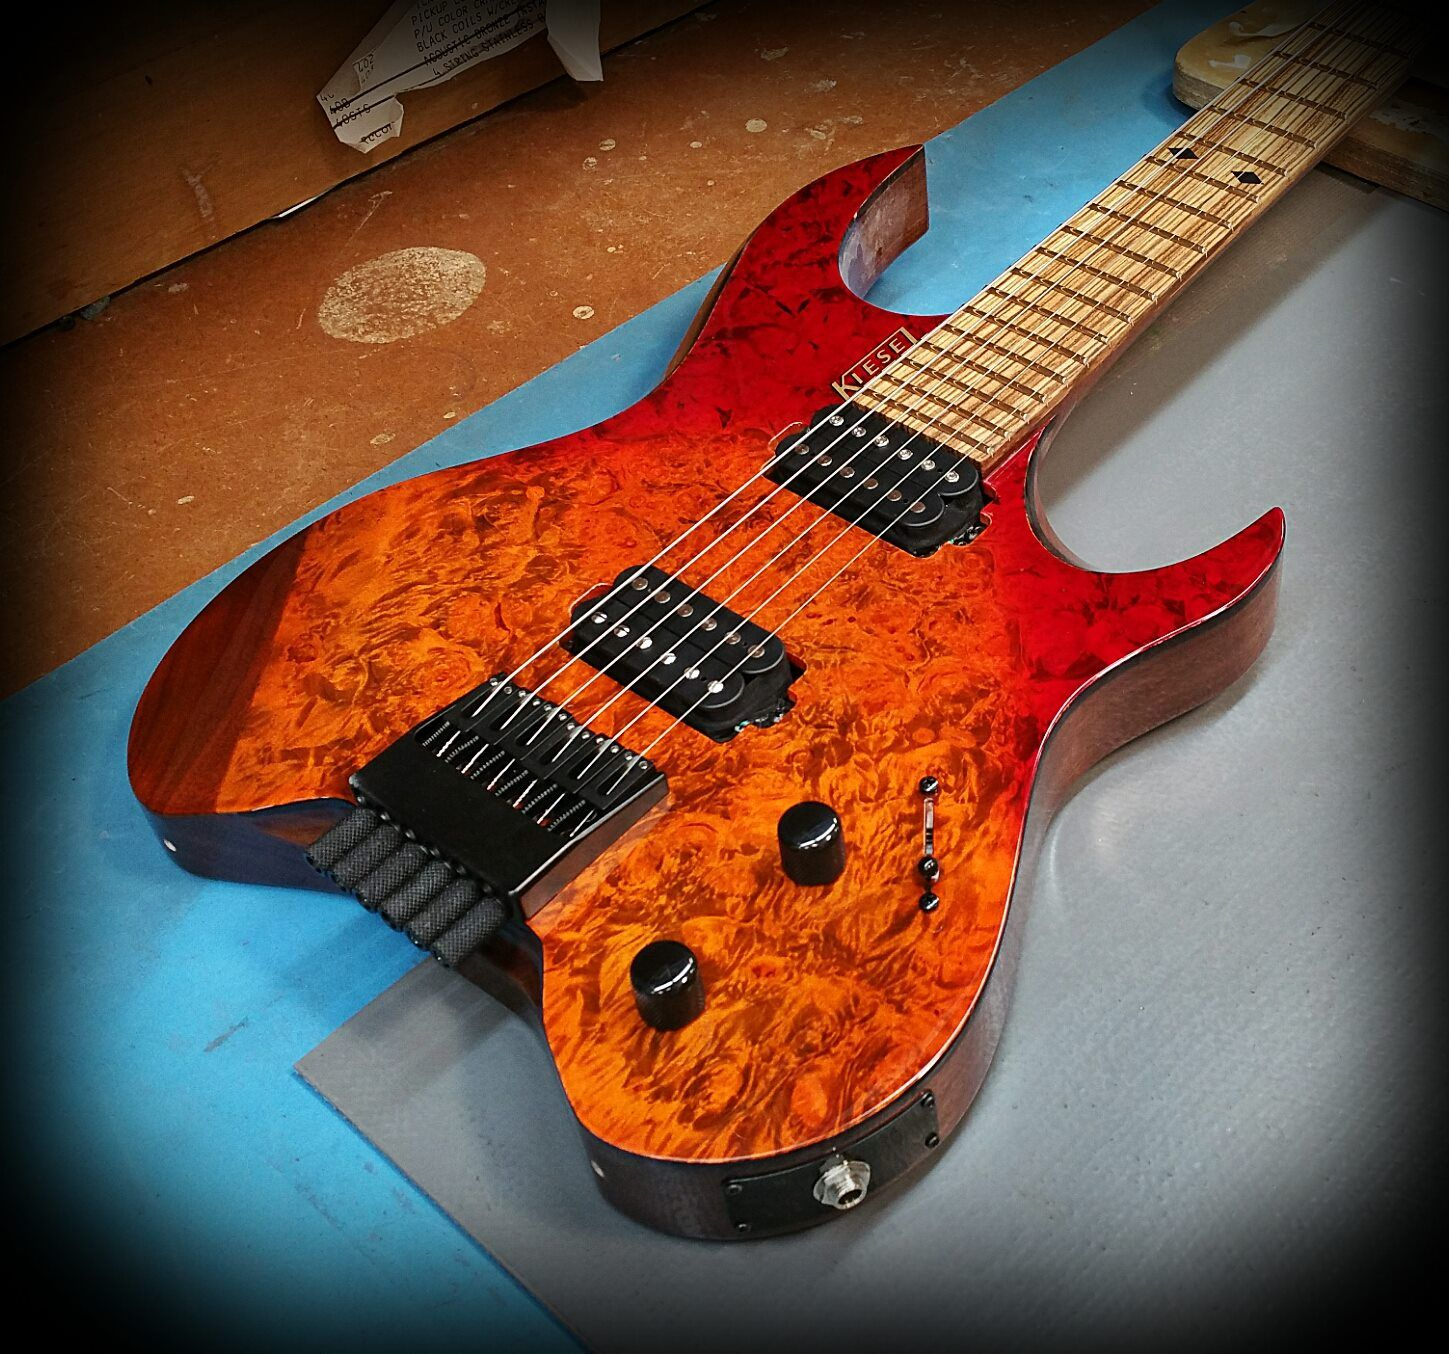 Kiesel Guitars Carvin Guitars V6 Vader headless series in a custom color v burst